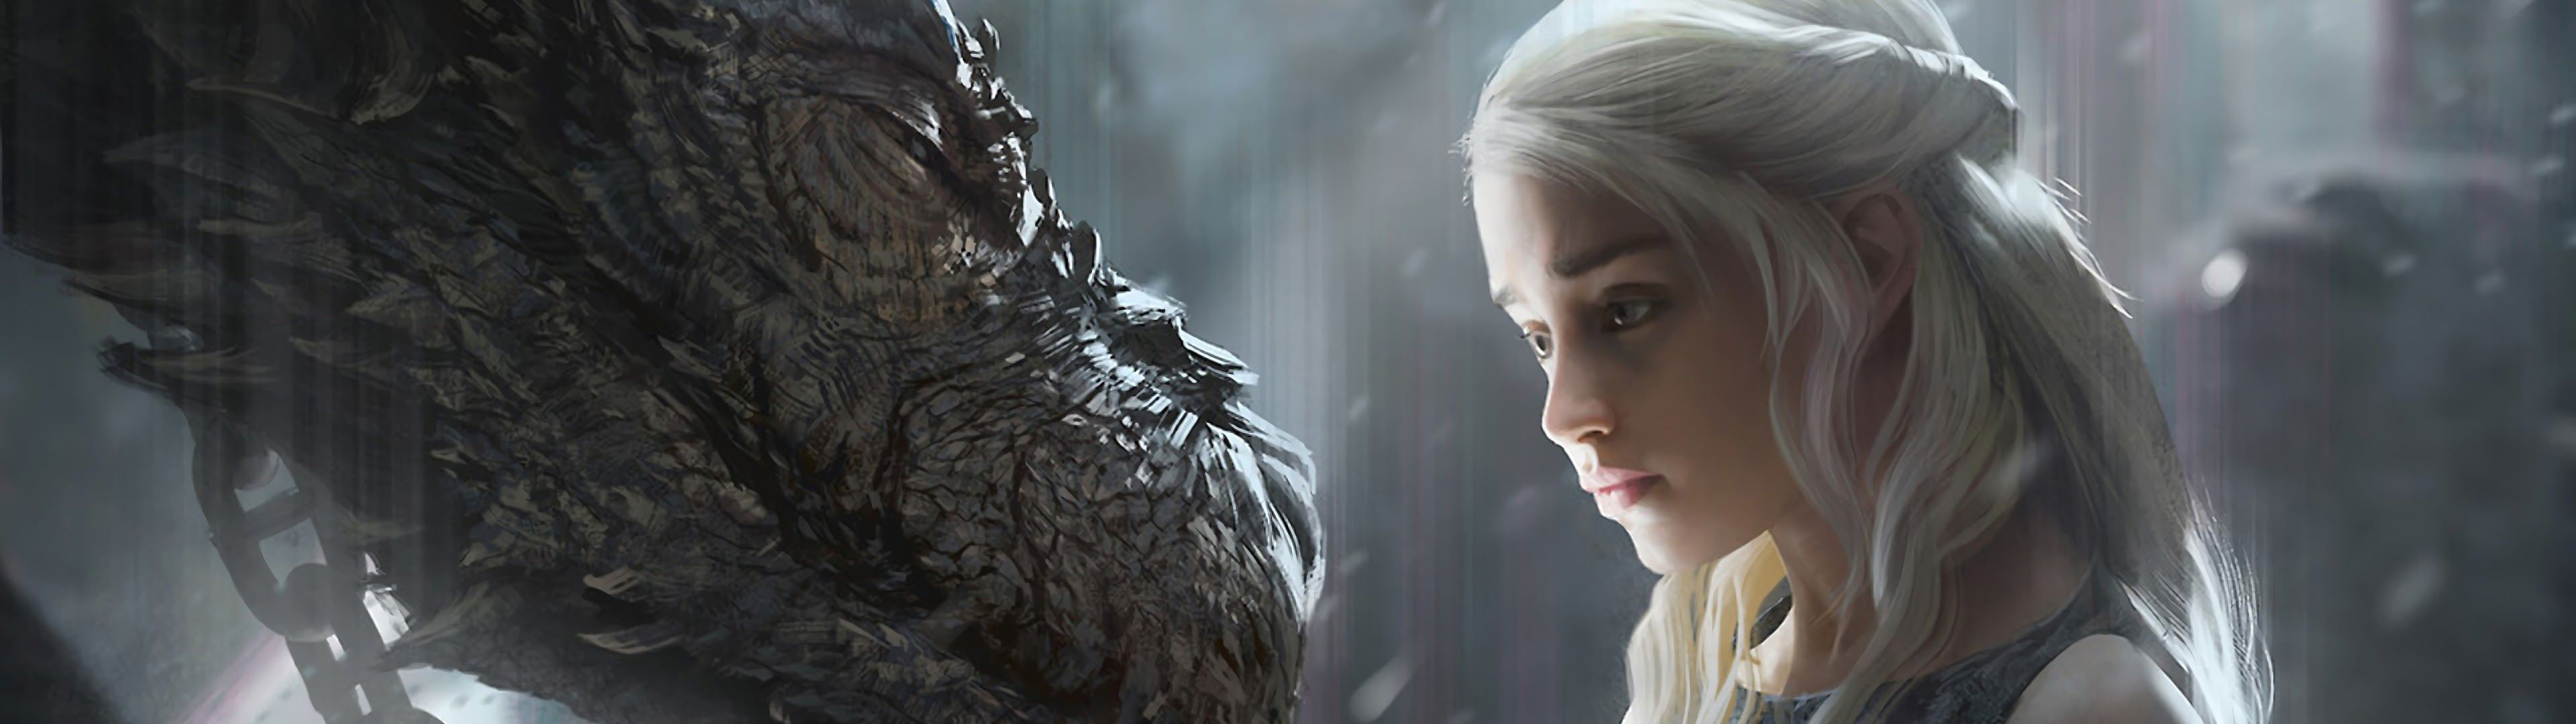 Game of Thrones Dual Screen Wallpapers - Top Free Game of ...